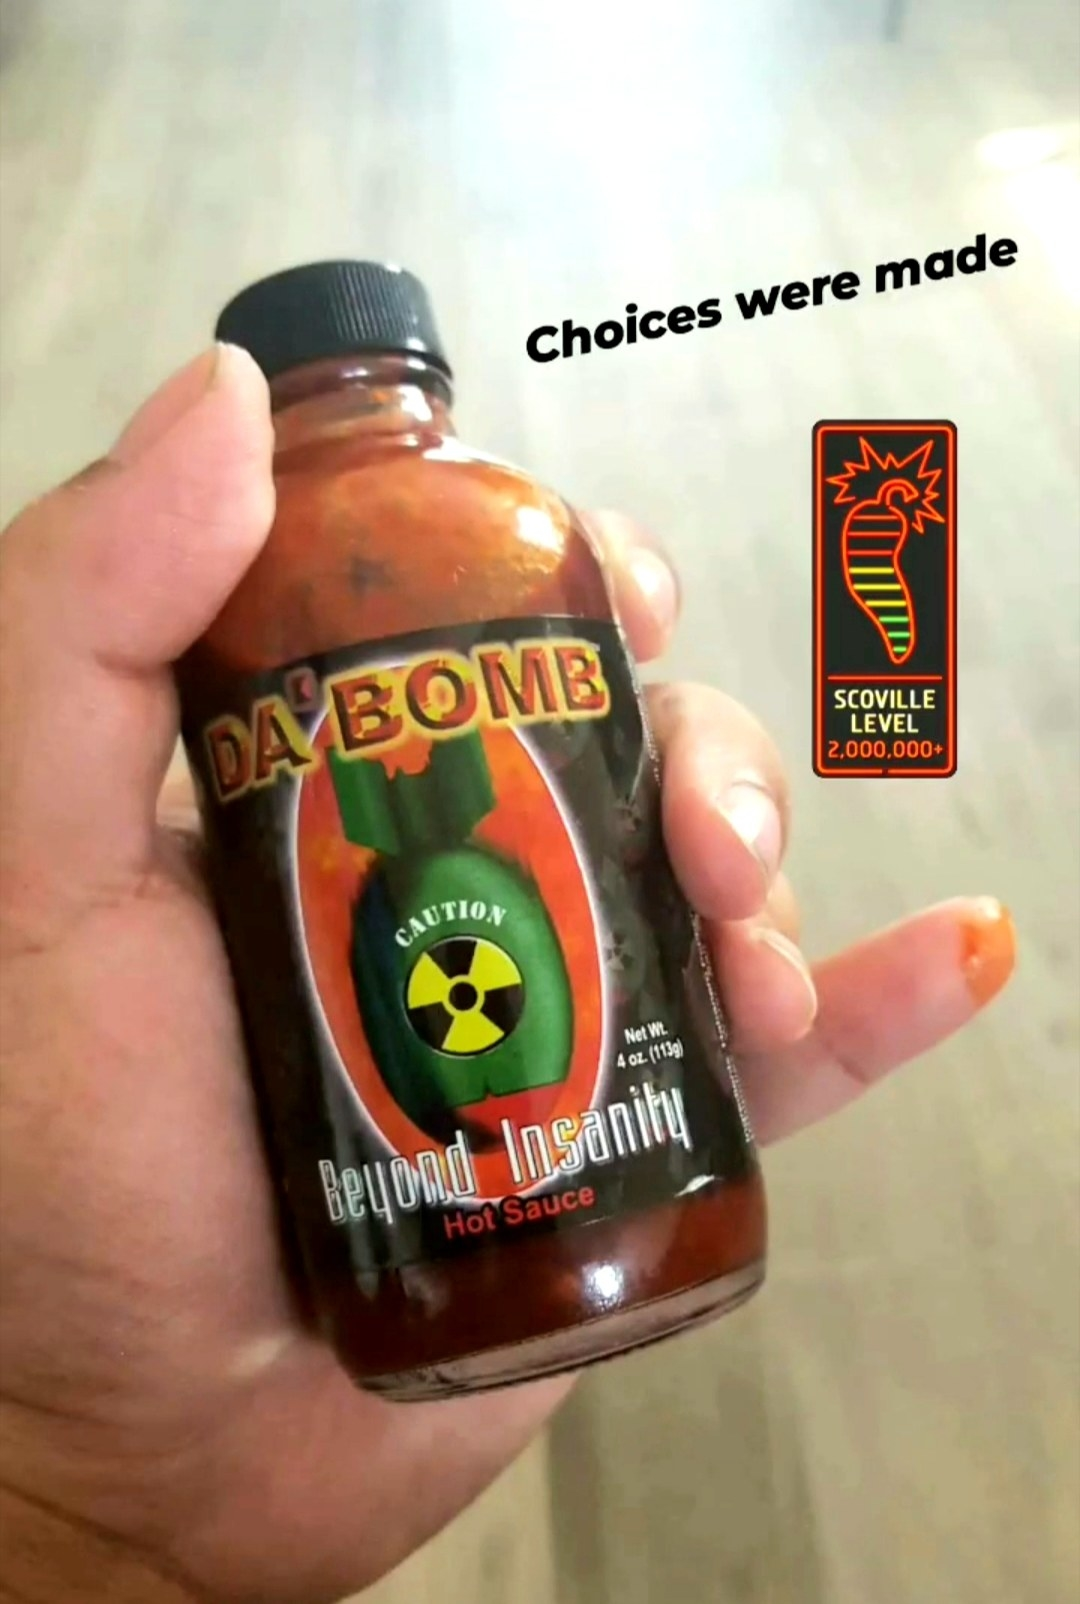 Sarah holding a bottle of Da Bomb Beyond Insanity hot sauce, the photo has the caption that says Choices were made